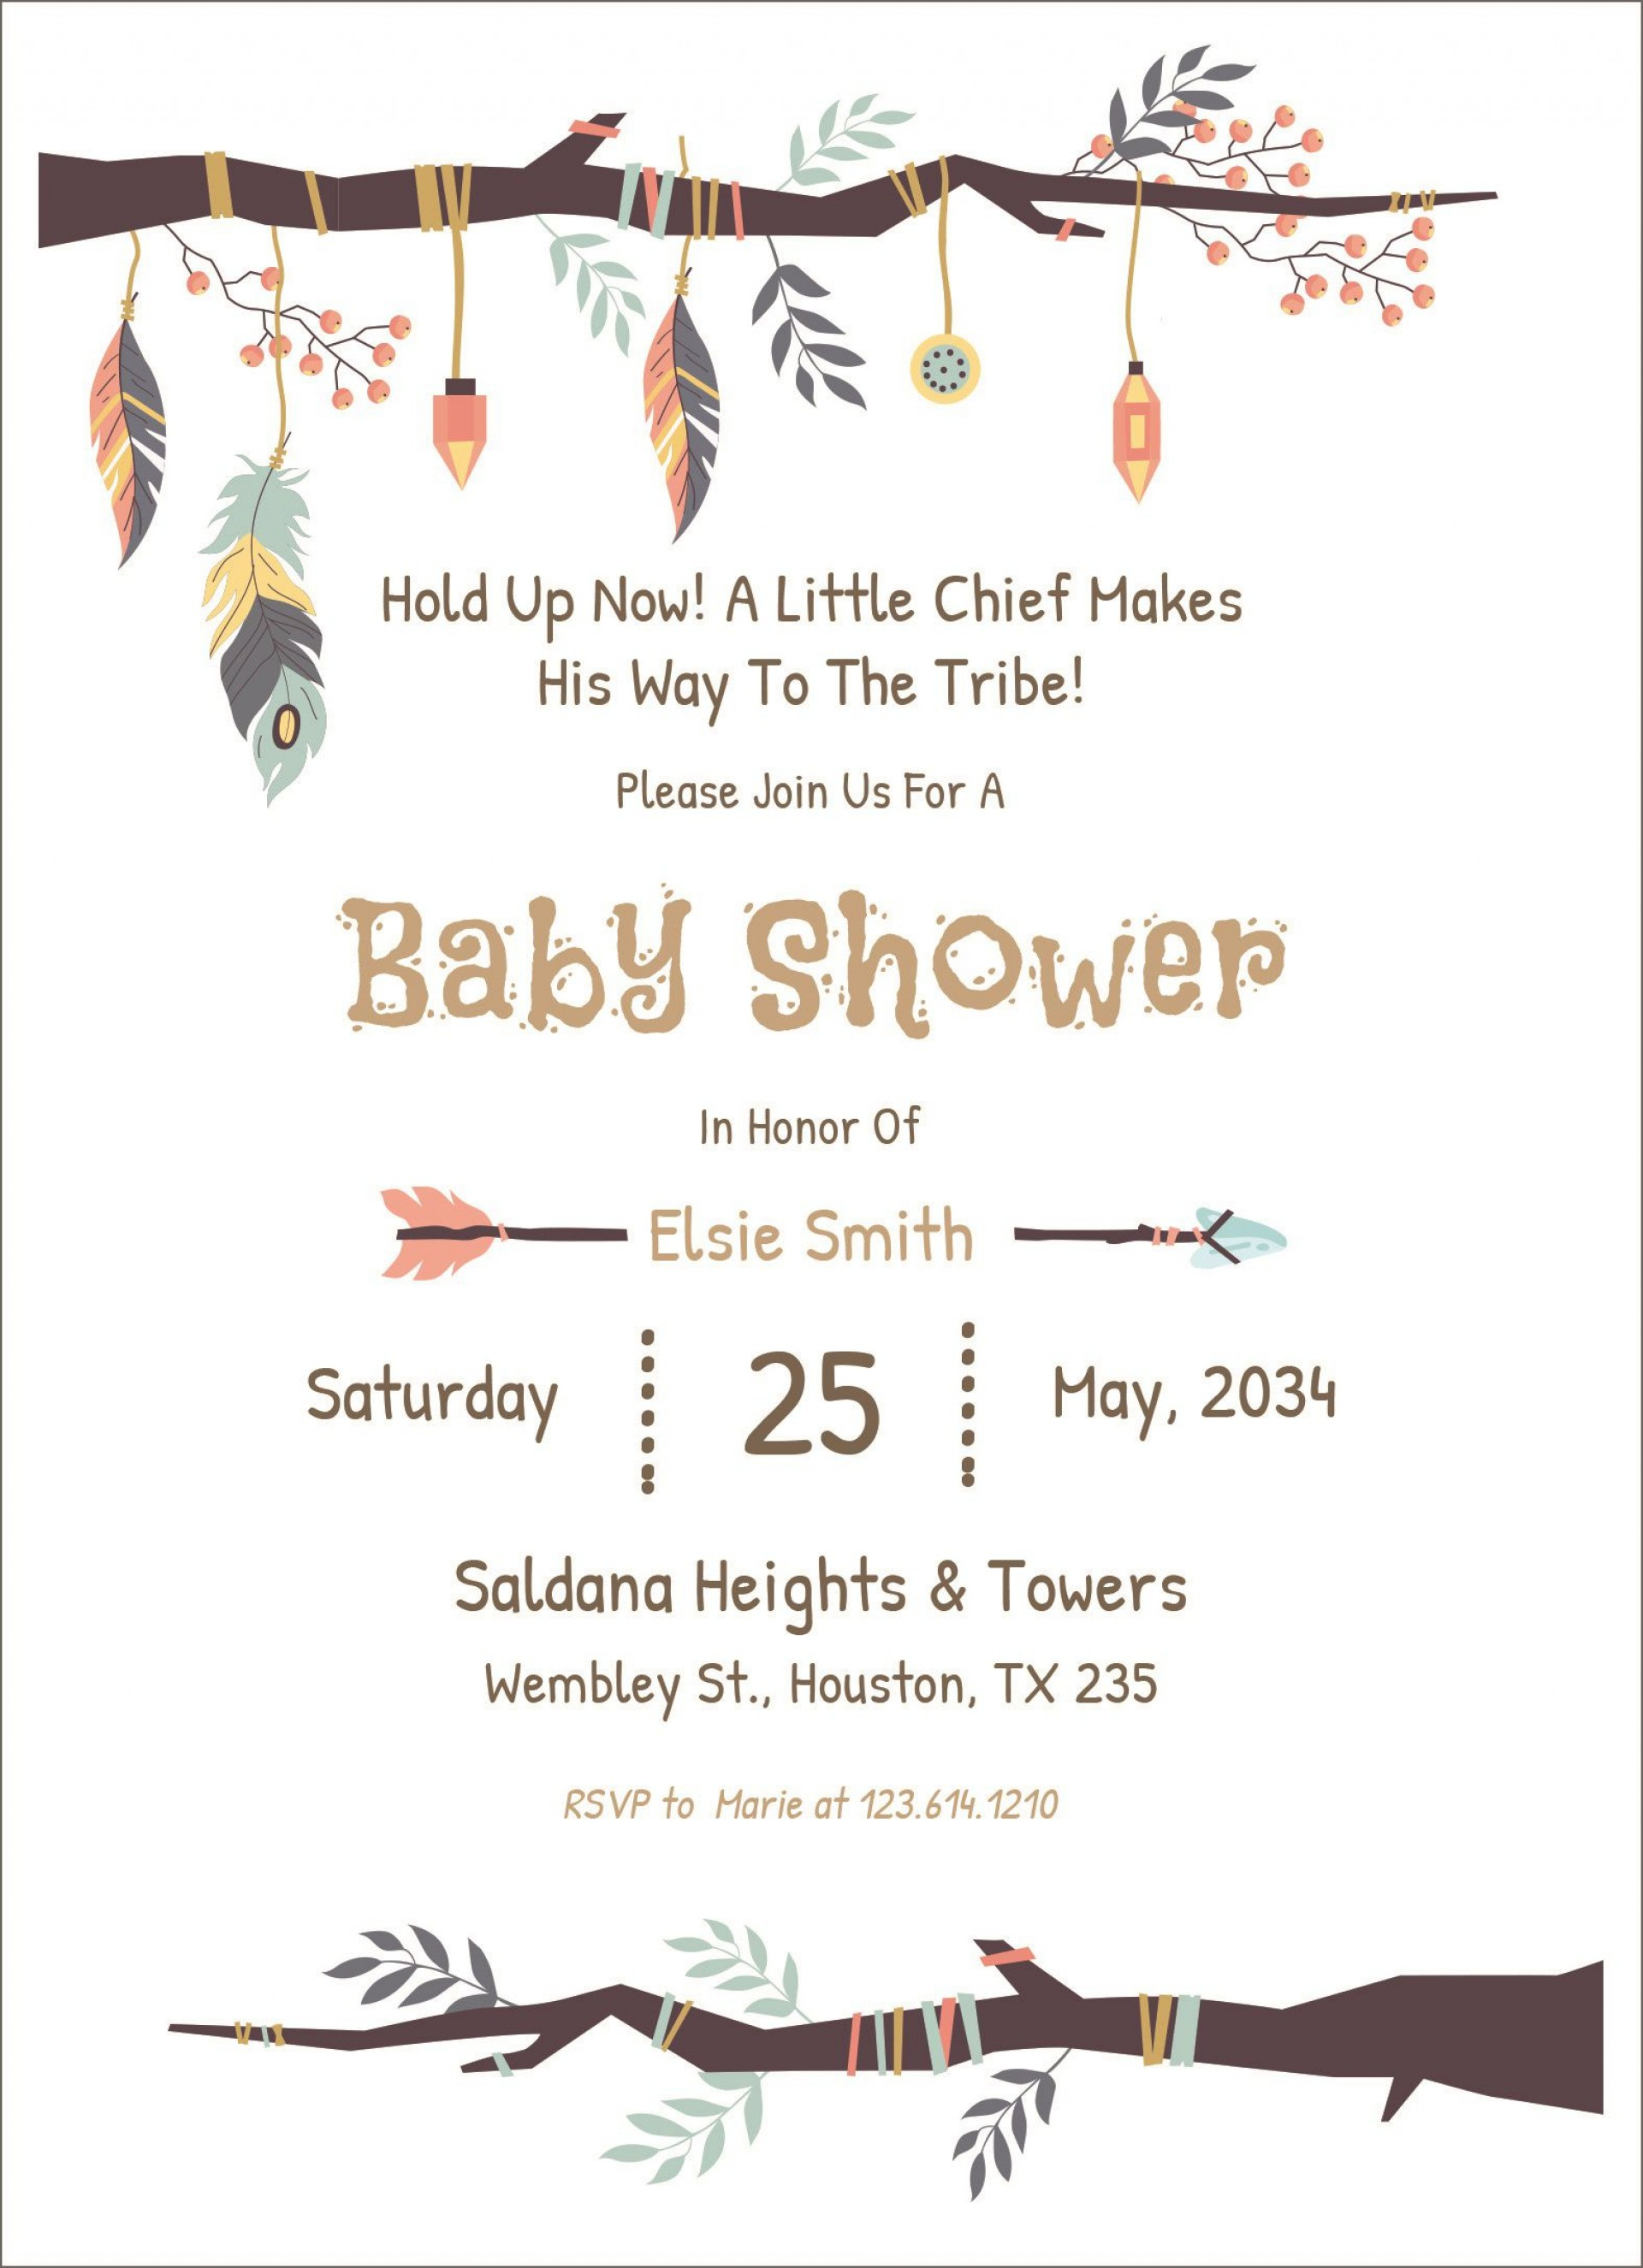 005 Amazing Free Baby Shower Card Template For Word High Def 1920